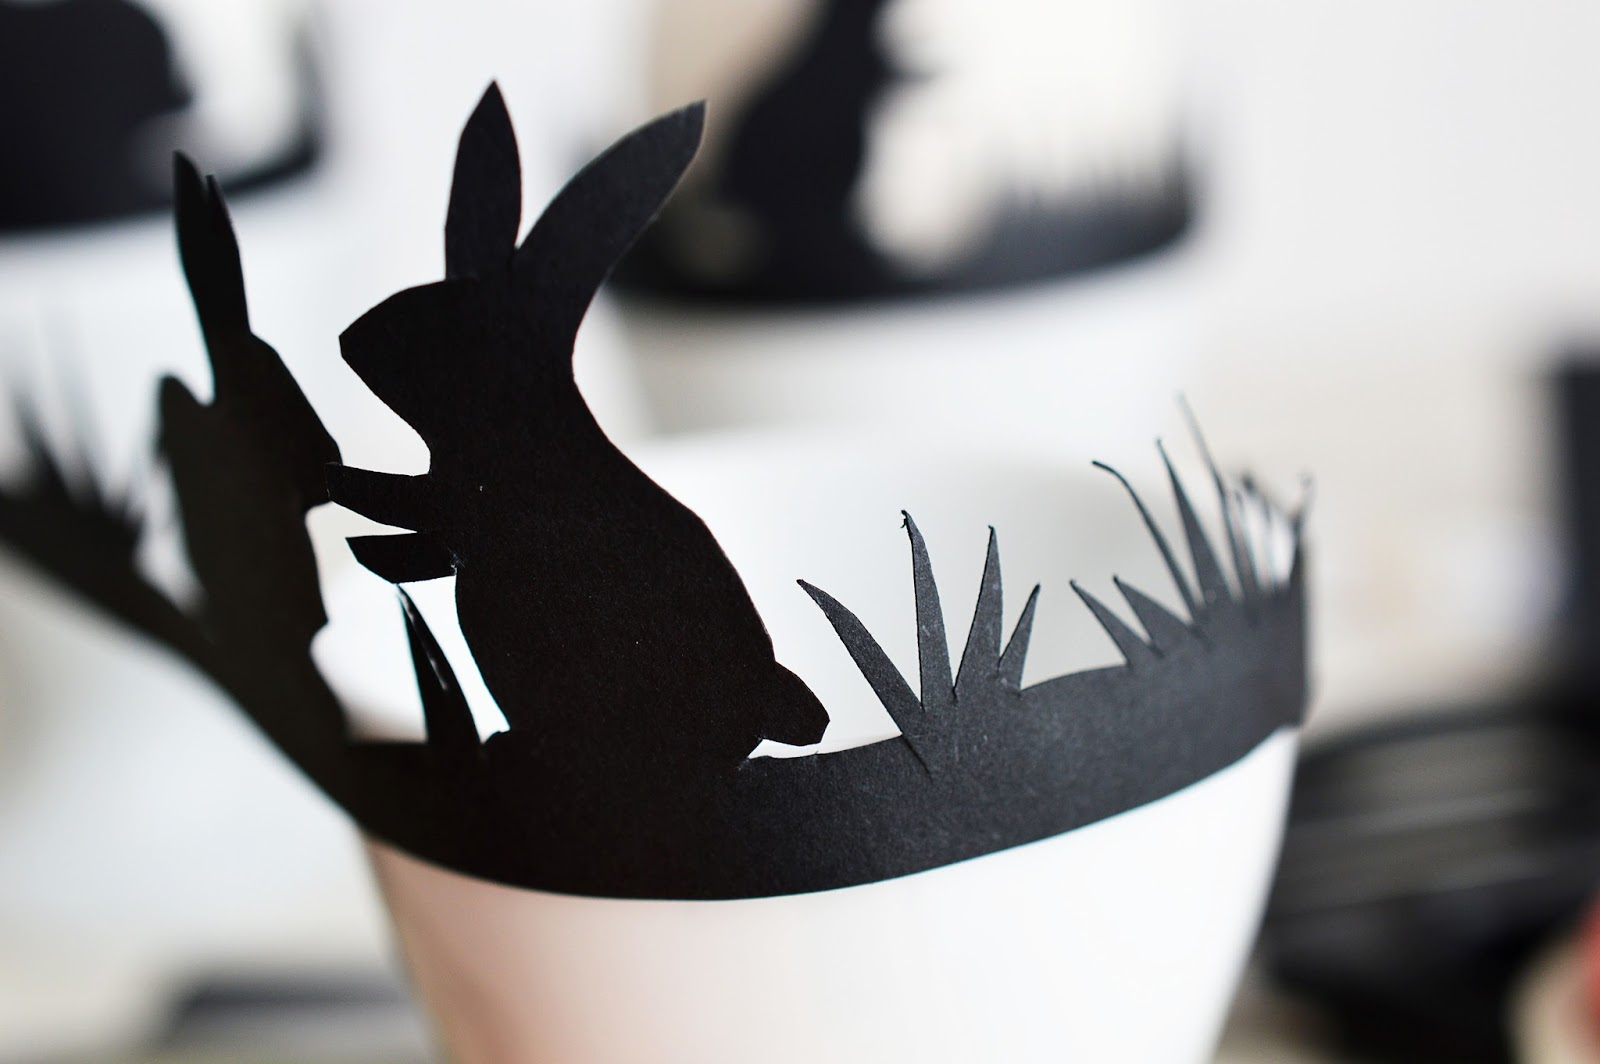 DIY Egg Cup Silhouette Band   Motte's Blog